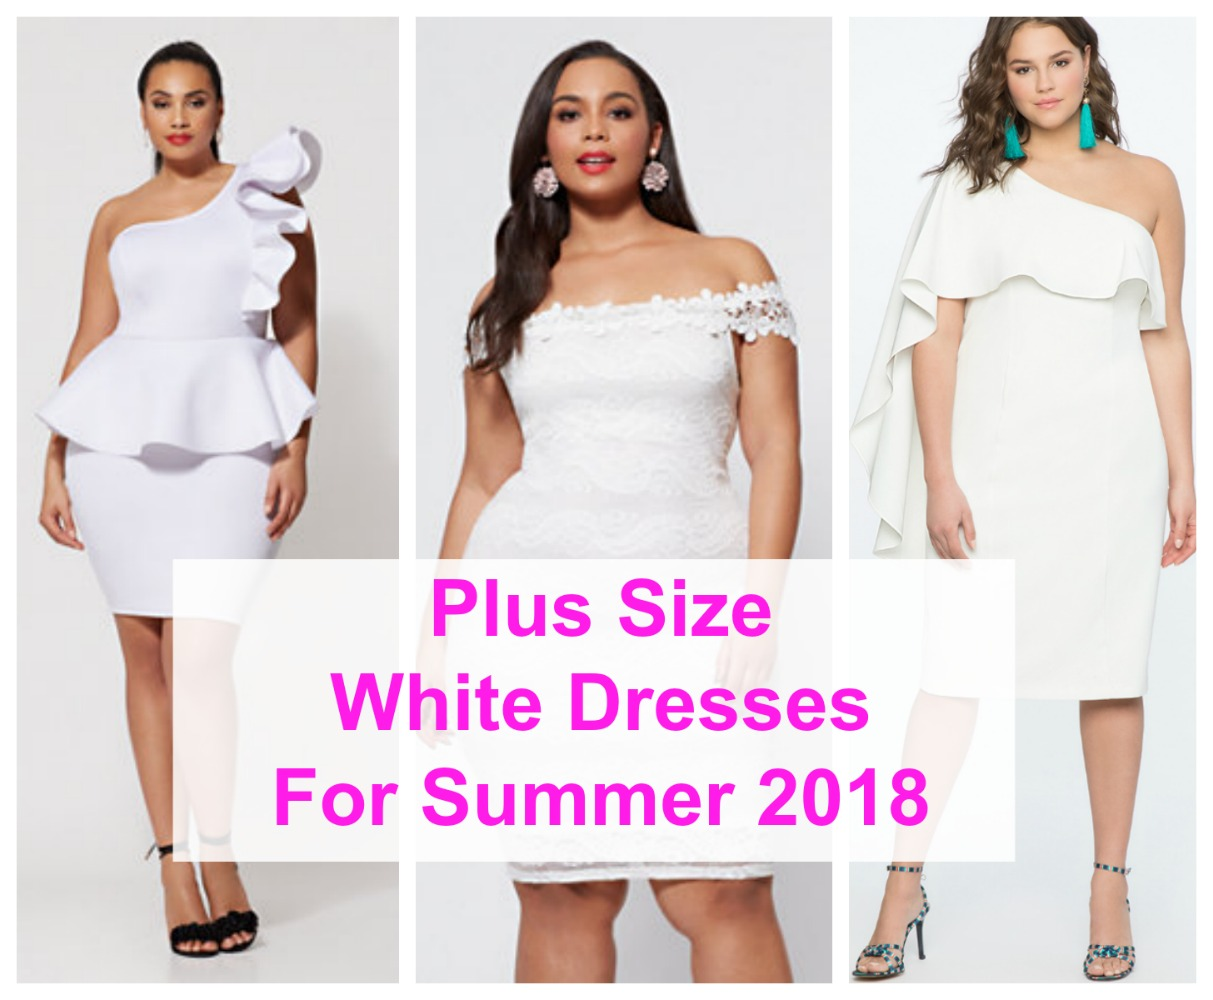 Chic White Plus Size Dresses For Summer | Stylish Curves